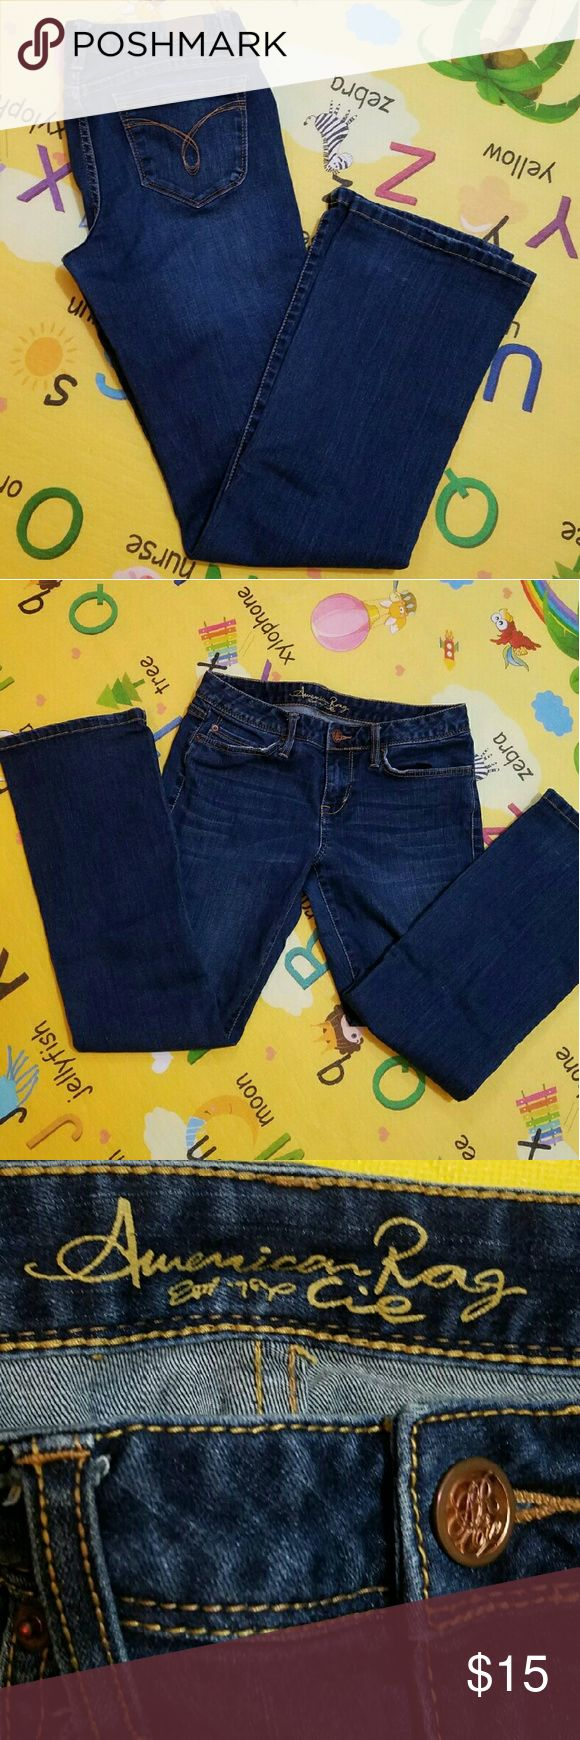 American Rag size 7-S Jeans Used jeans but in great condition.  No stains or holes. Fit good. American Rag Jeans Straight Leg